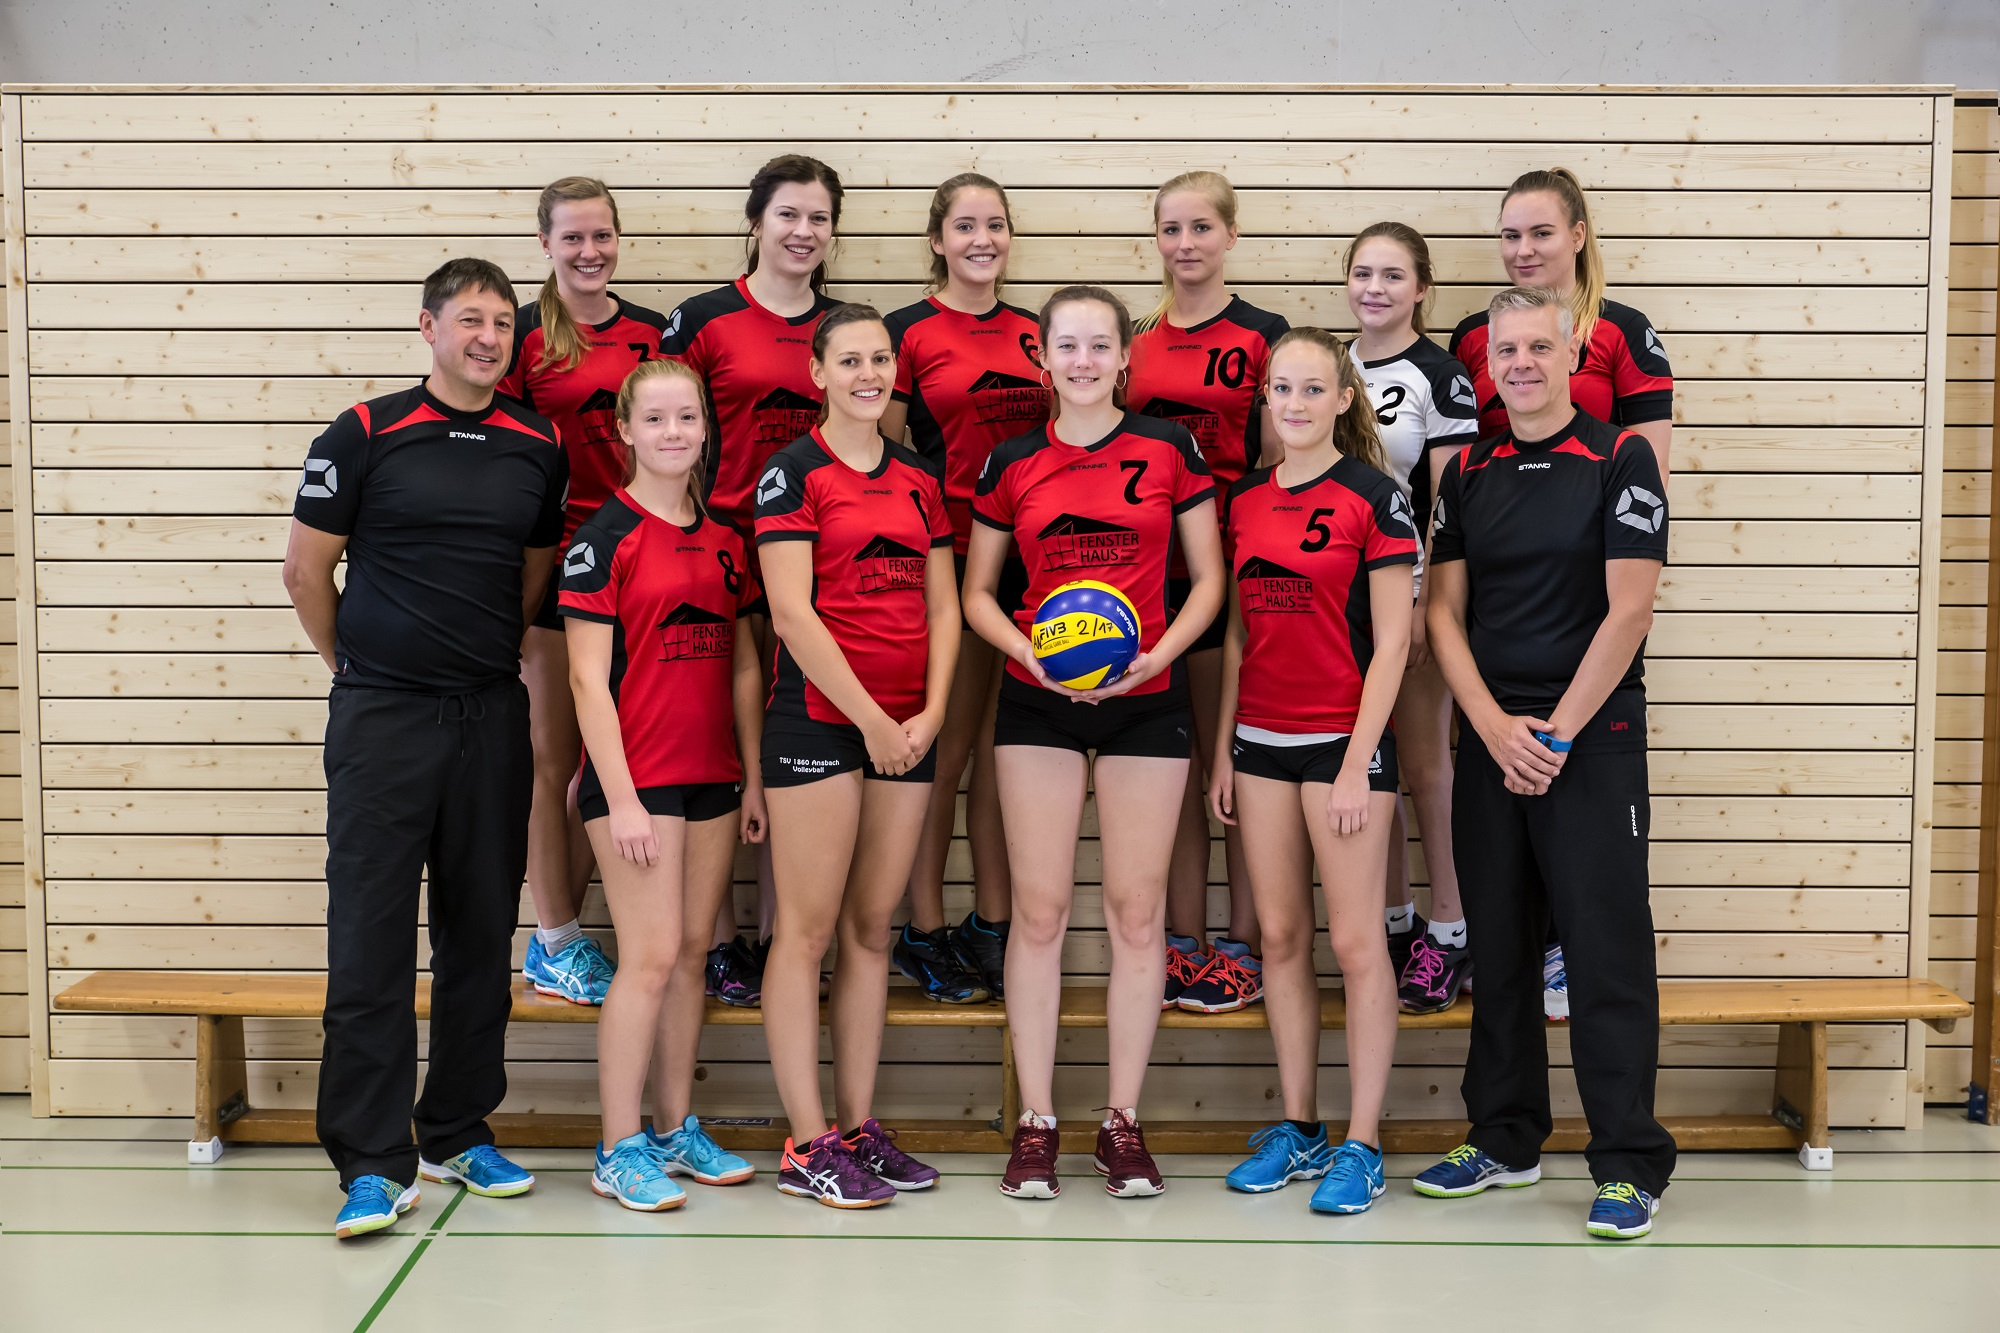 Volleyball Bezirksliga Damen  2/3